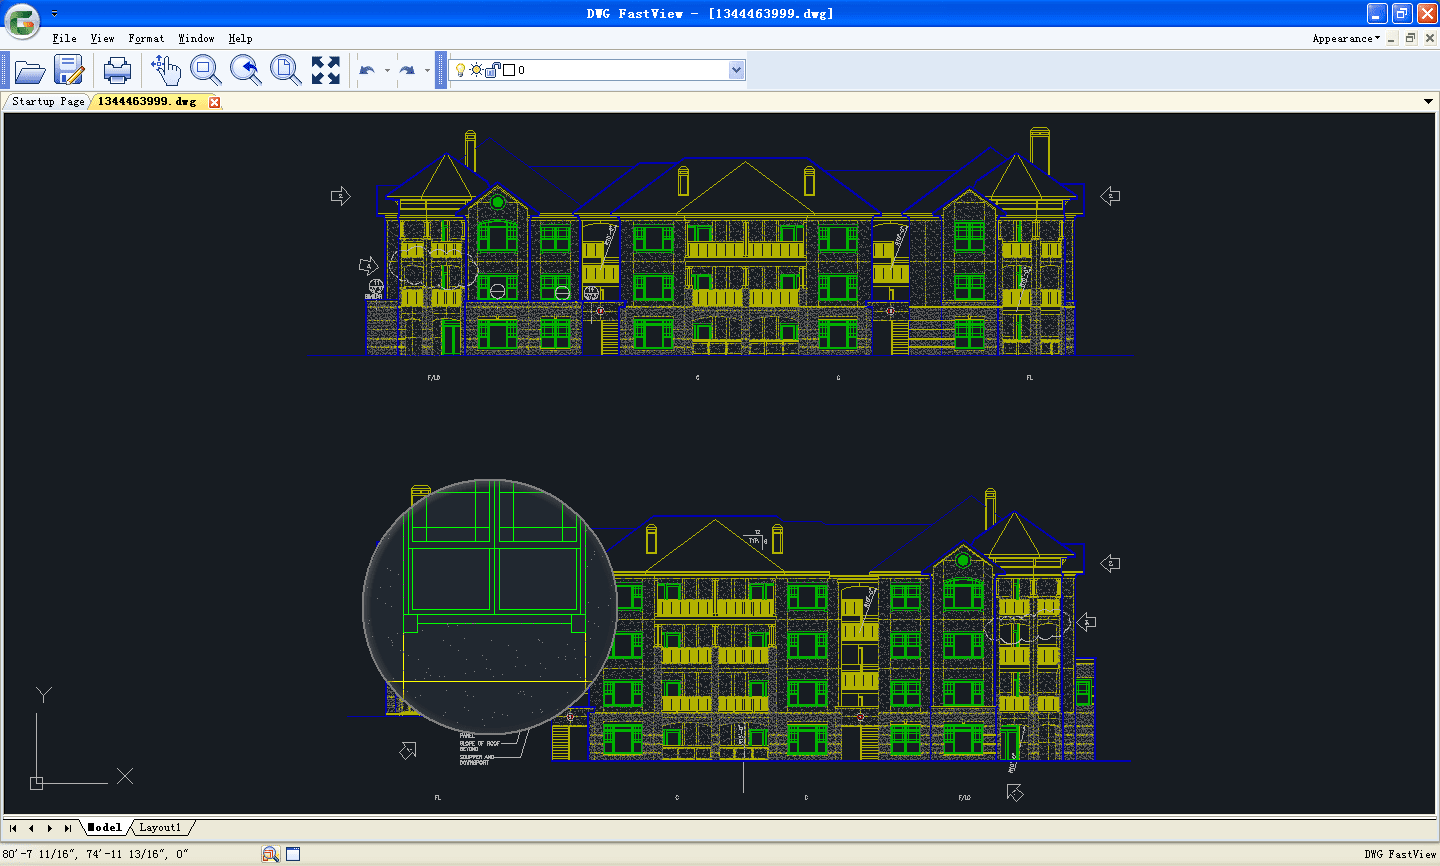 Dwg Fastview Download